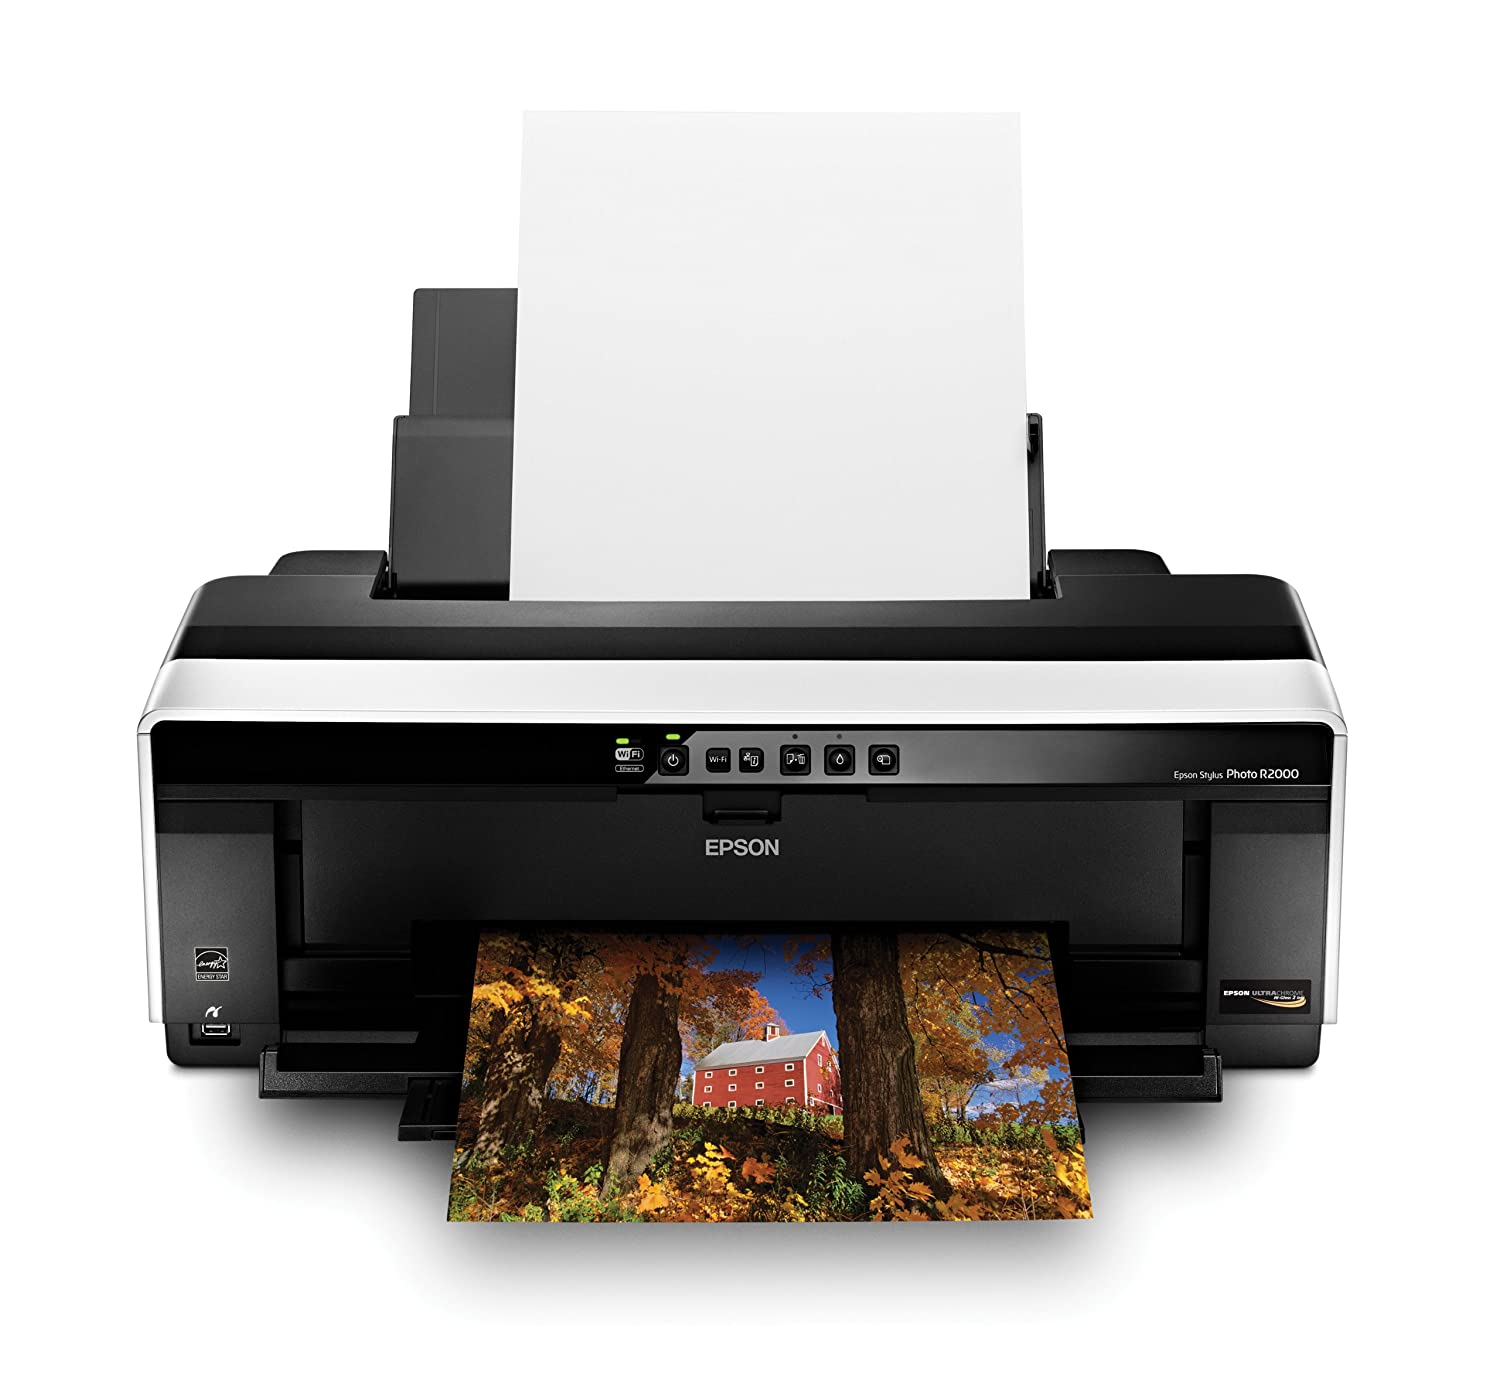 Top 10 Best Printers for Art Prints at Home and Office (2019 Reviews) 5